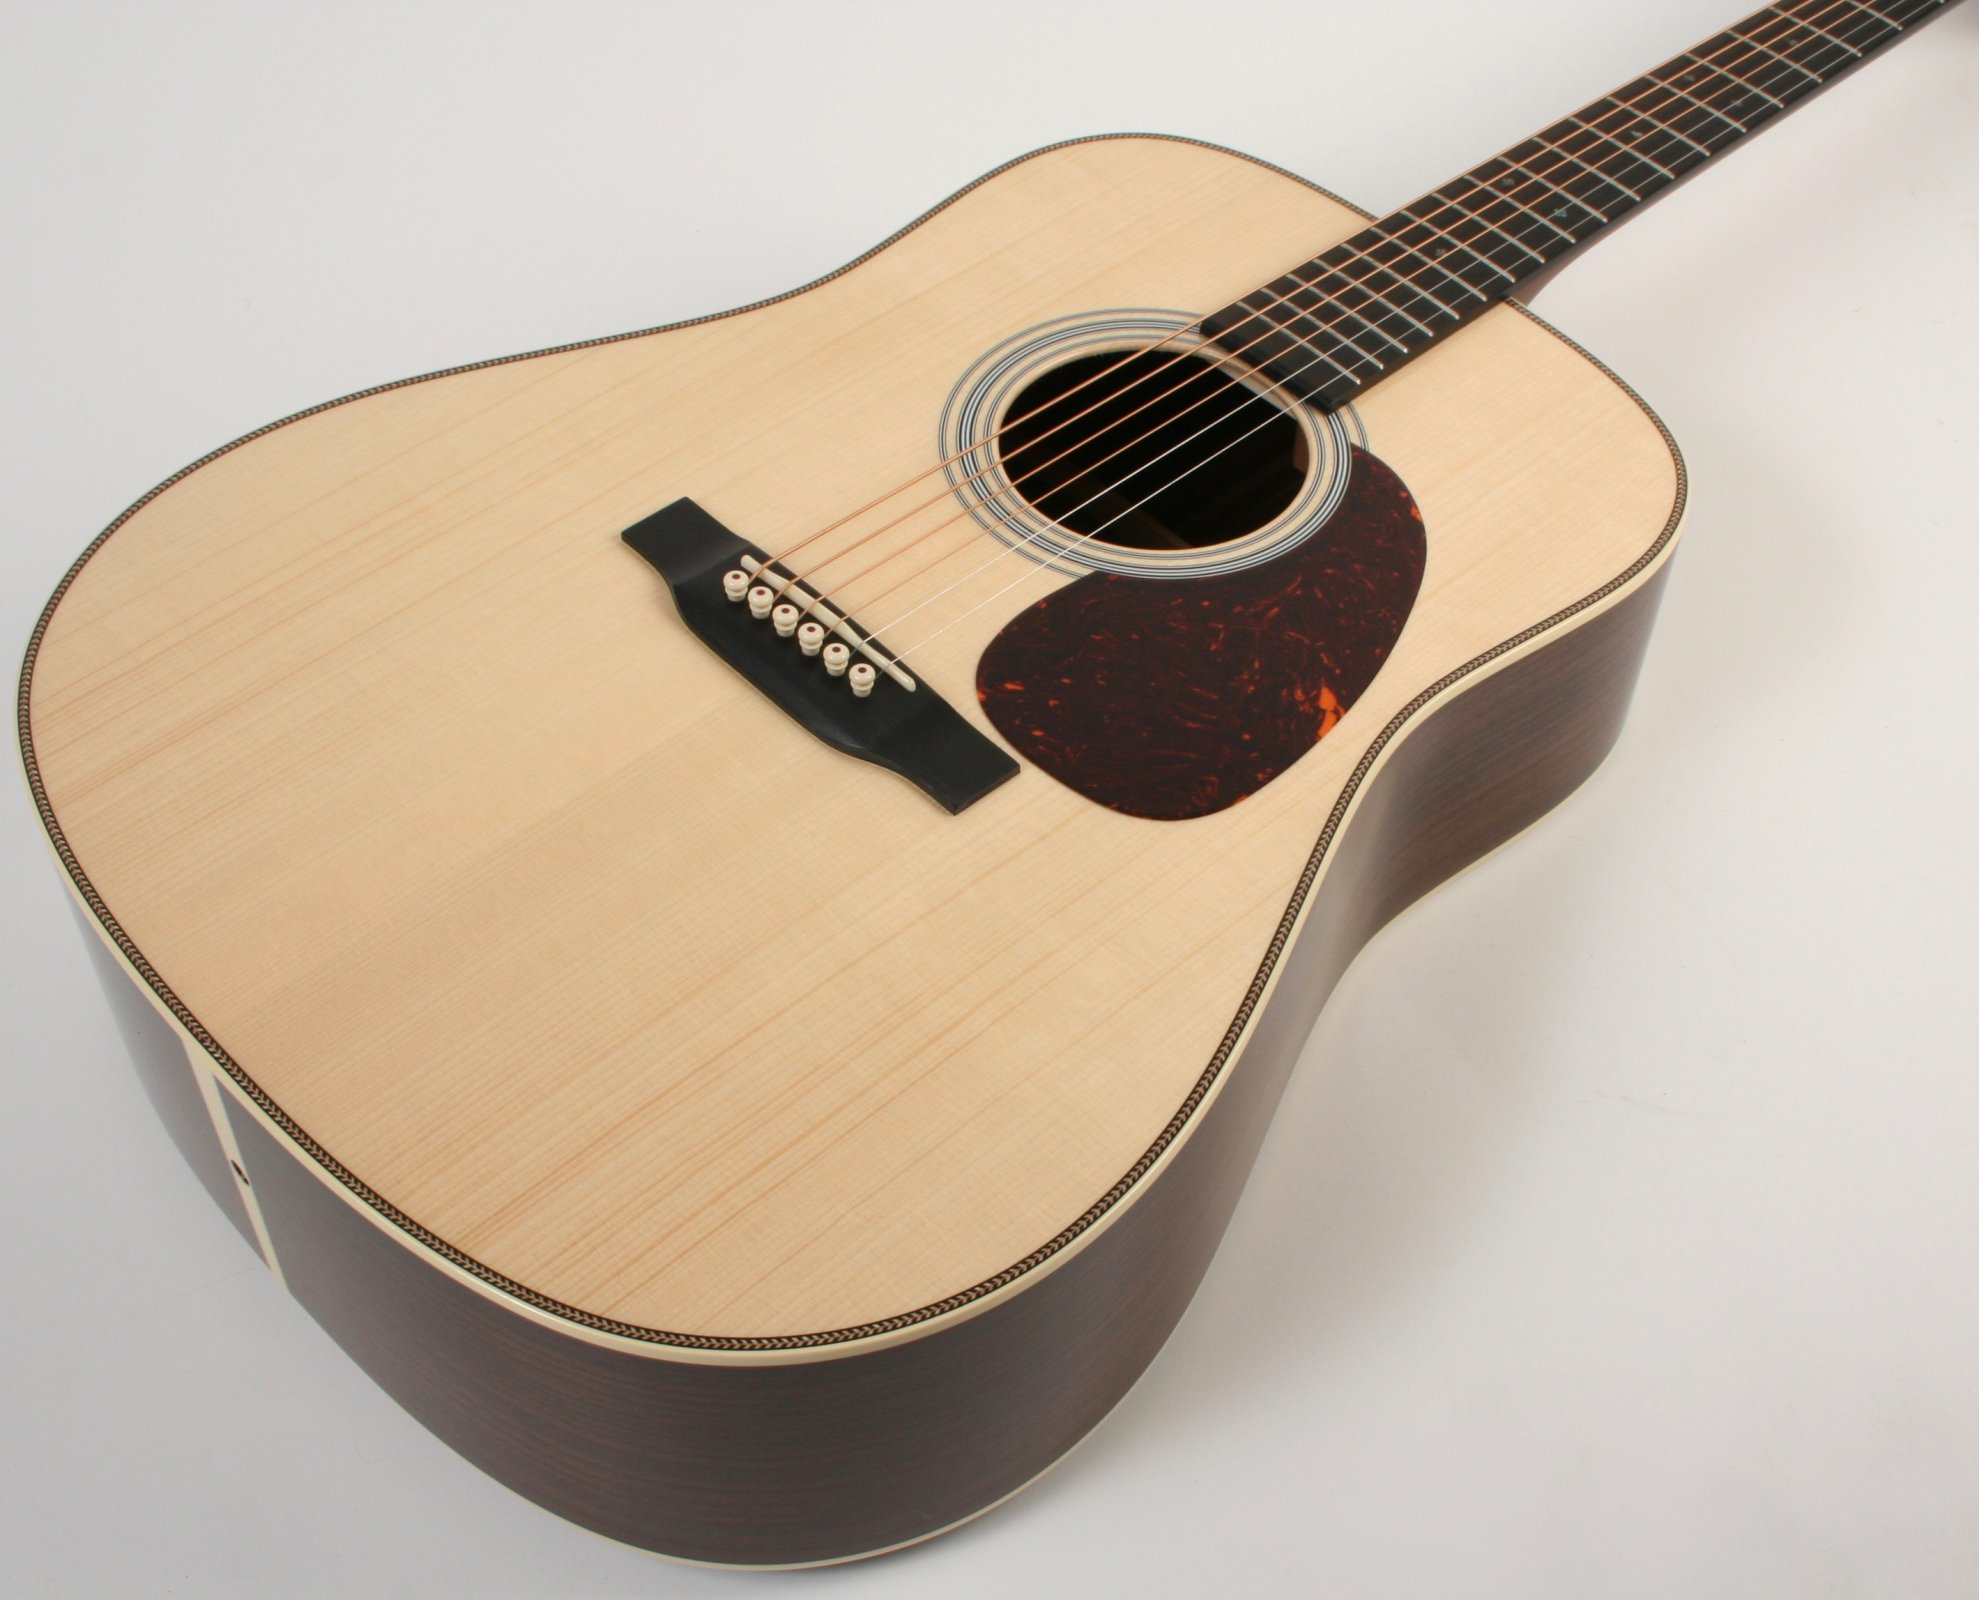 Martin Custom Shop Dreadnought D Size 28 Style Adirondack Top Modified Low Oval Neck Profile 1-11-16 Nut